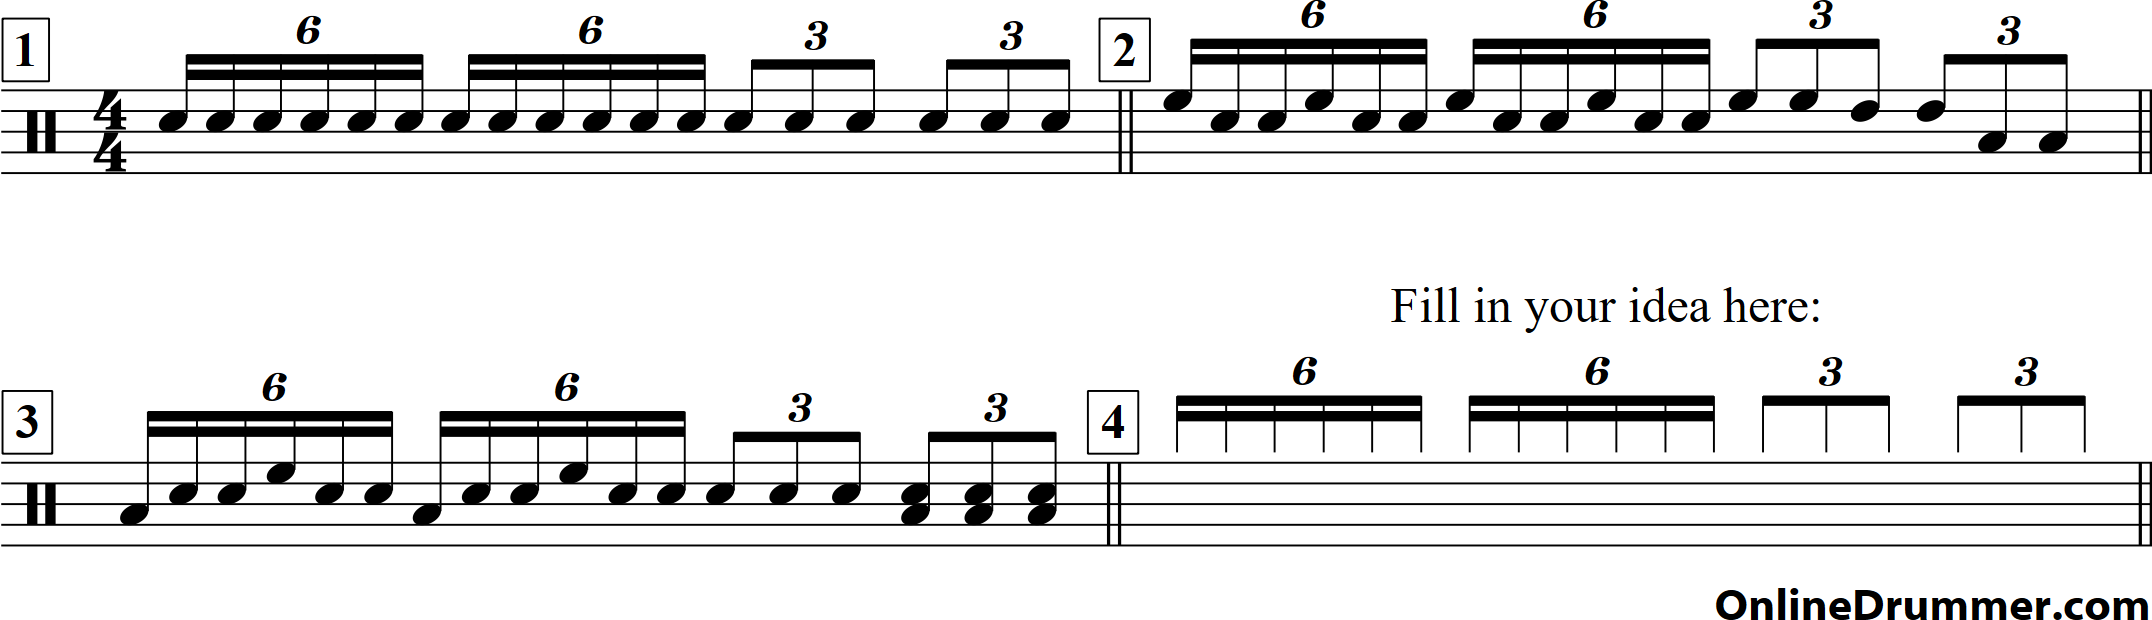 Drum Fill #13 - 6 to 3